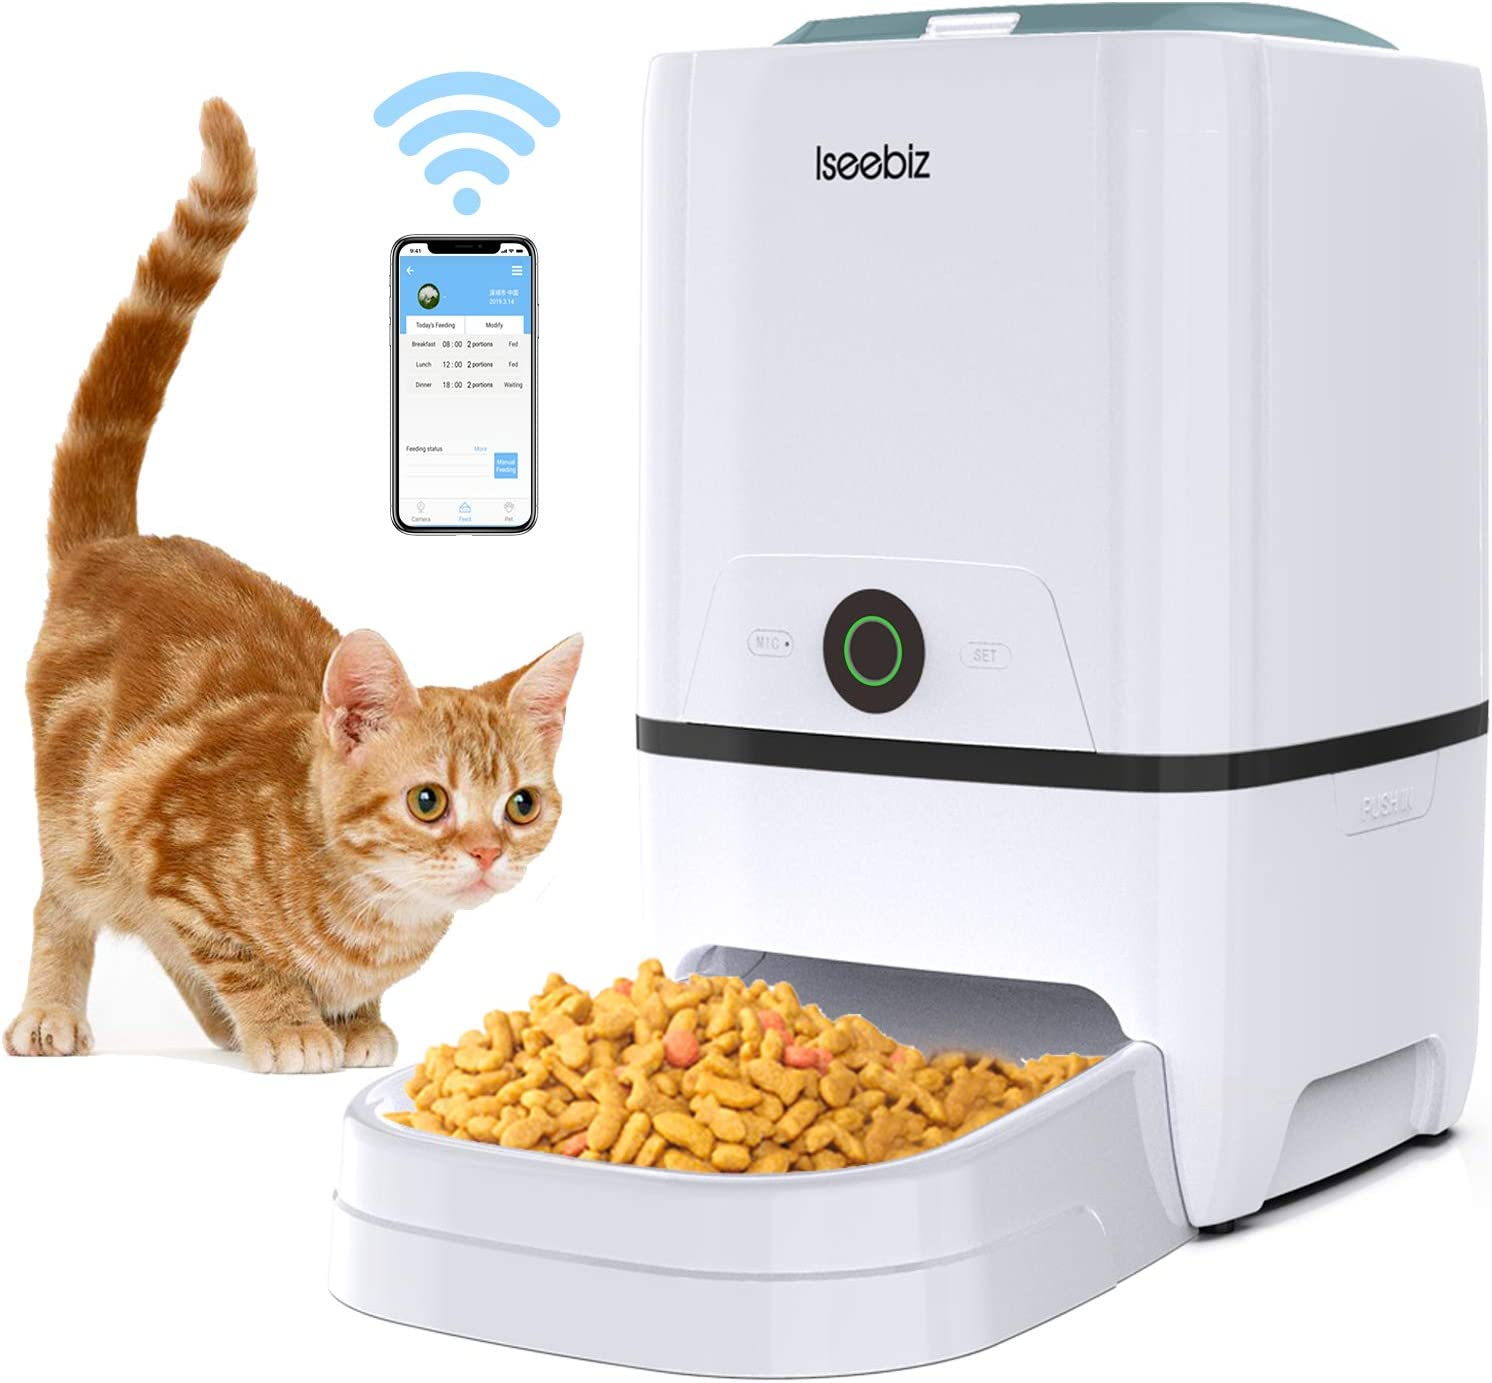 SEISSO Smart Pet Feeder with WiFi, Automatic Cat Feeder Large Capacity Dog Food Dispenser, WiFi Cellphone APP Program Feeding